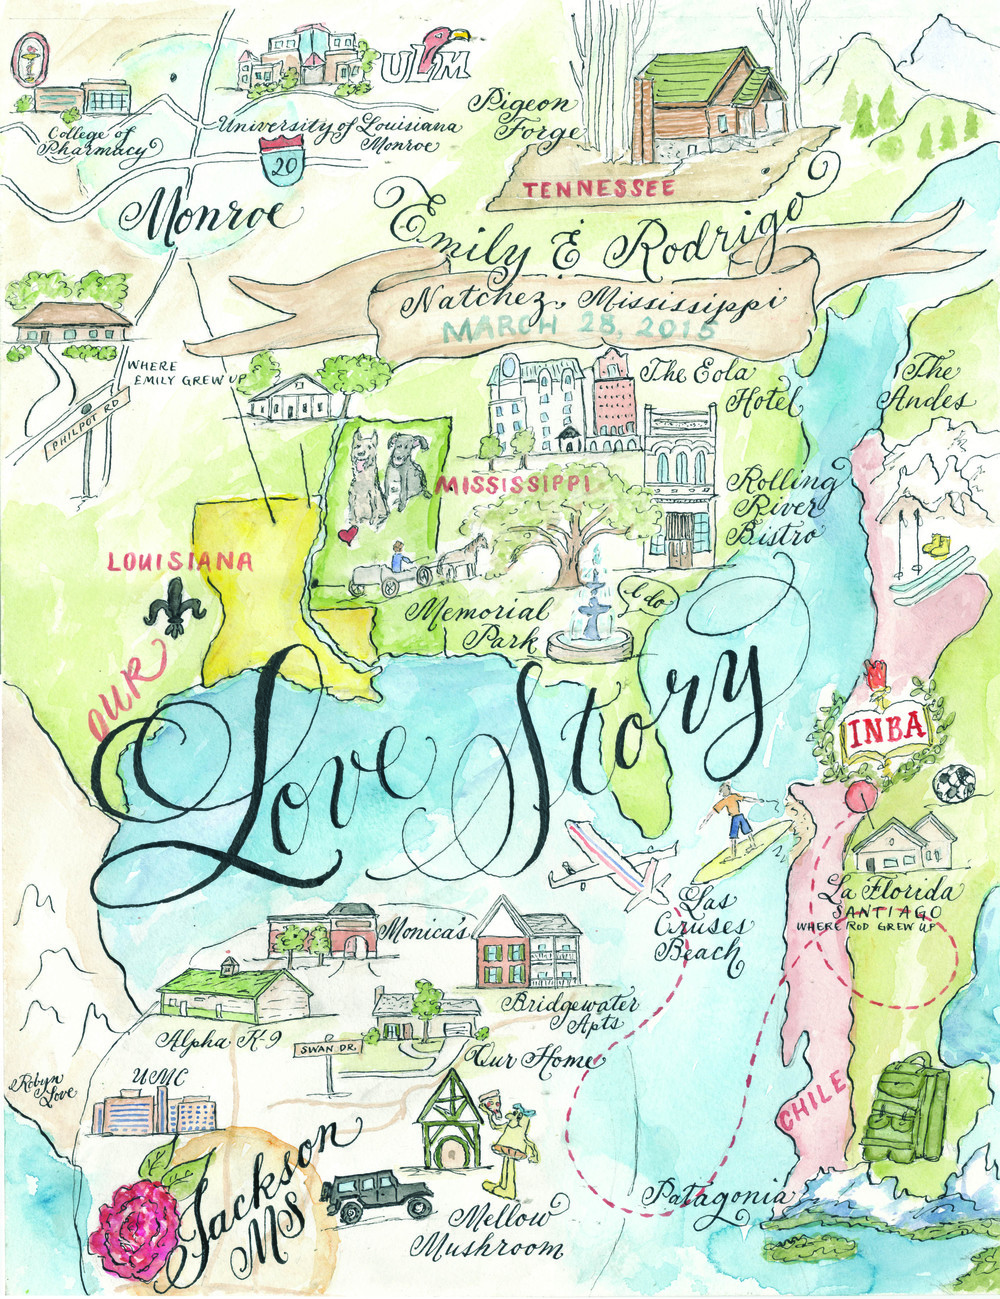 emily white love story map copy.jpg